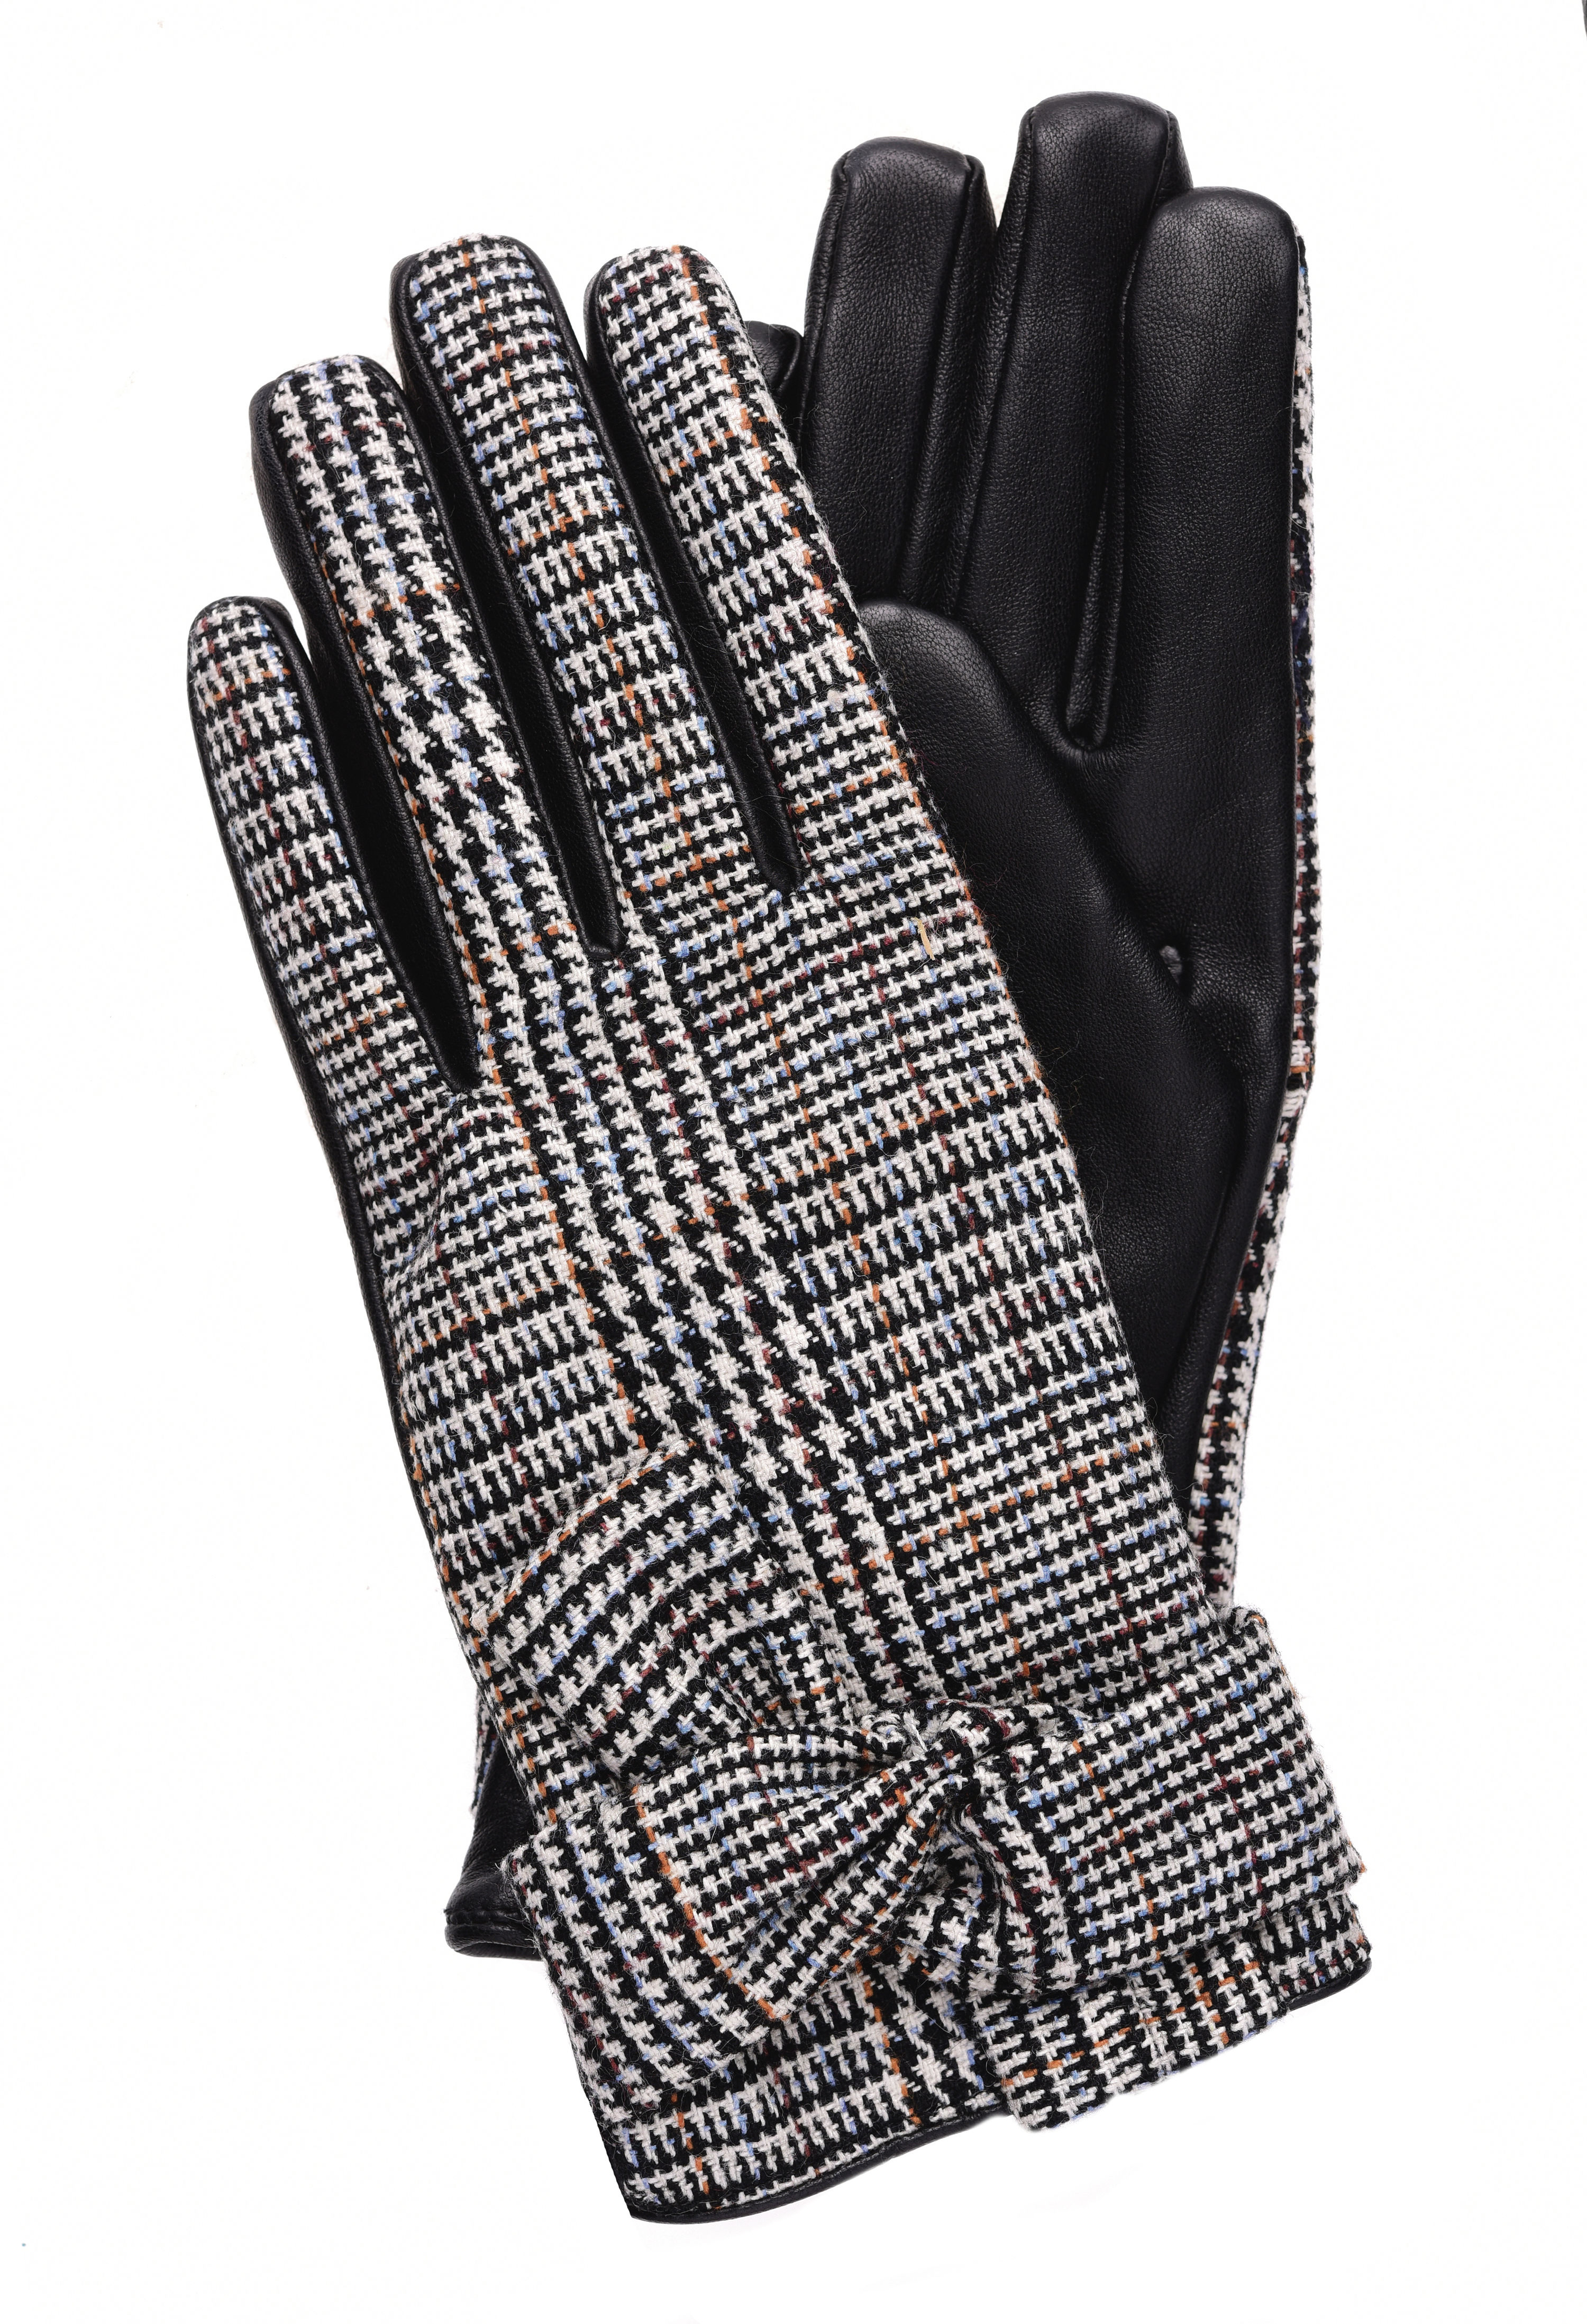 Heritage check gloves, £18, Dorothy Perkins